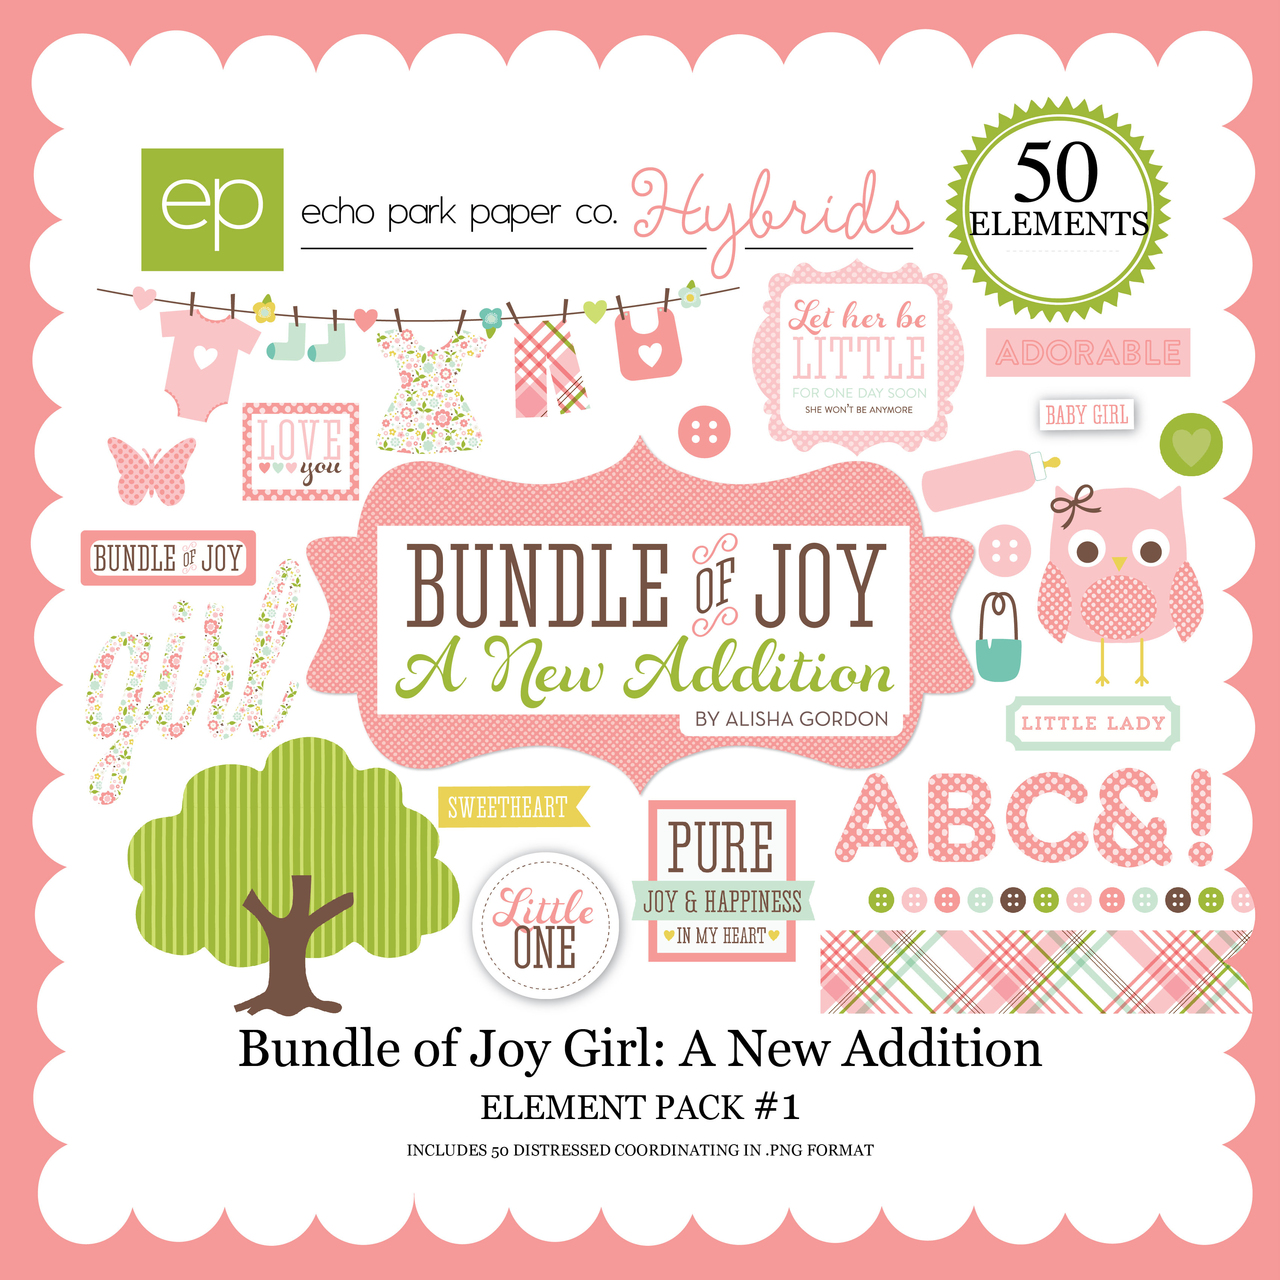 Bundle of Joy Girl: A New Addition Element Pack #1